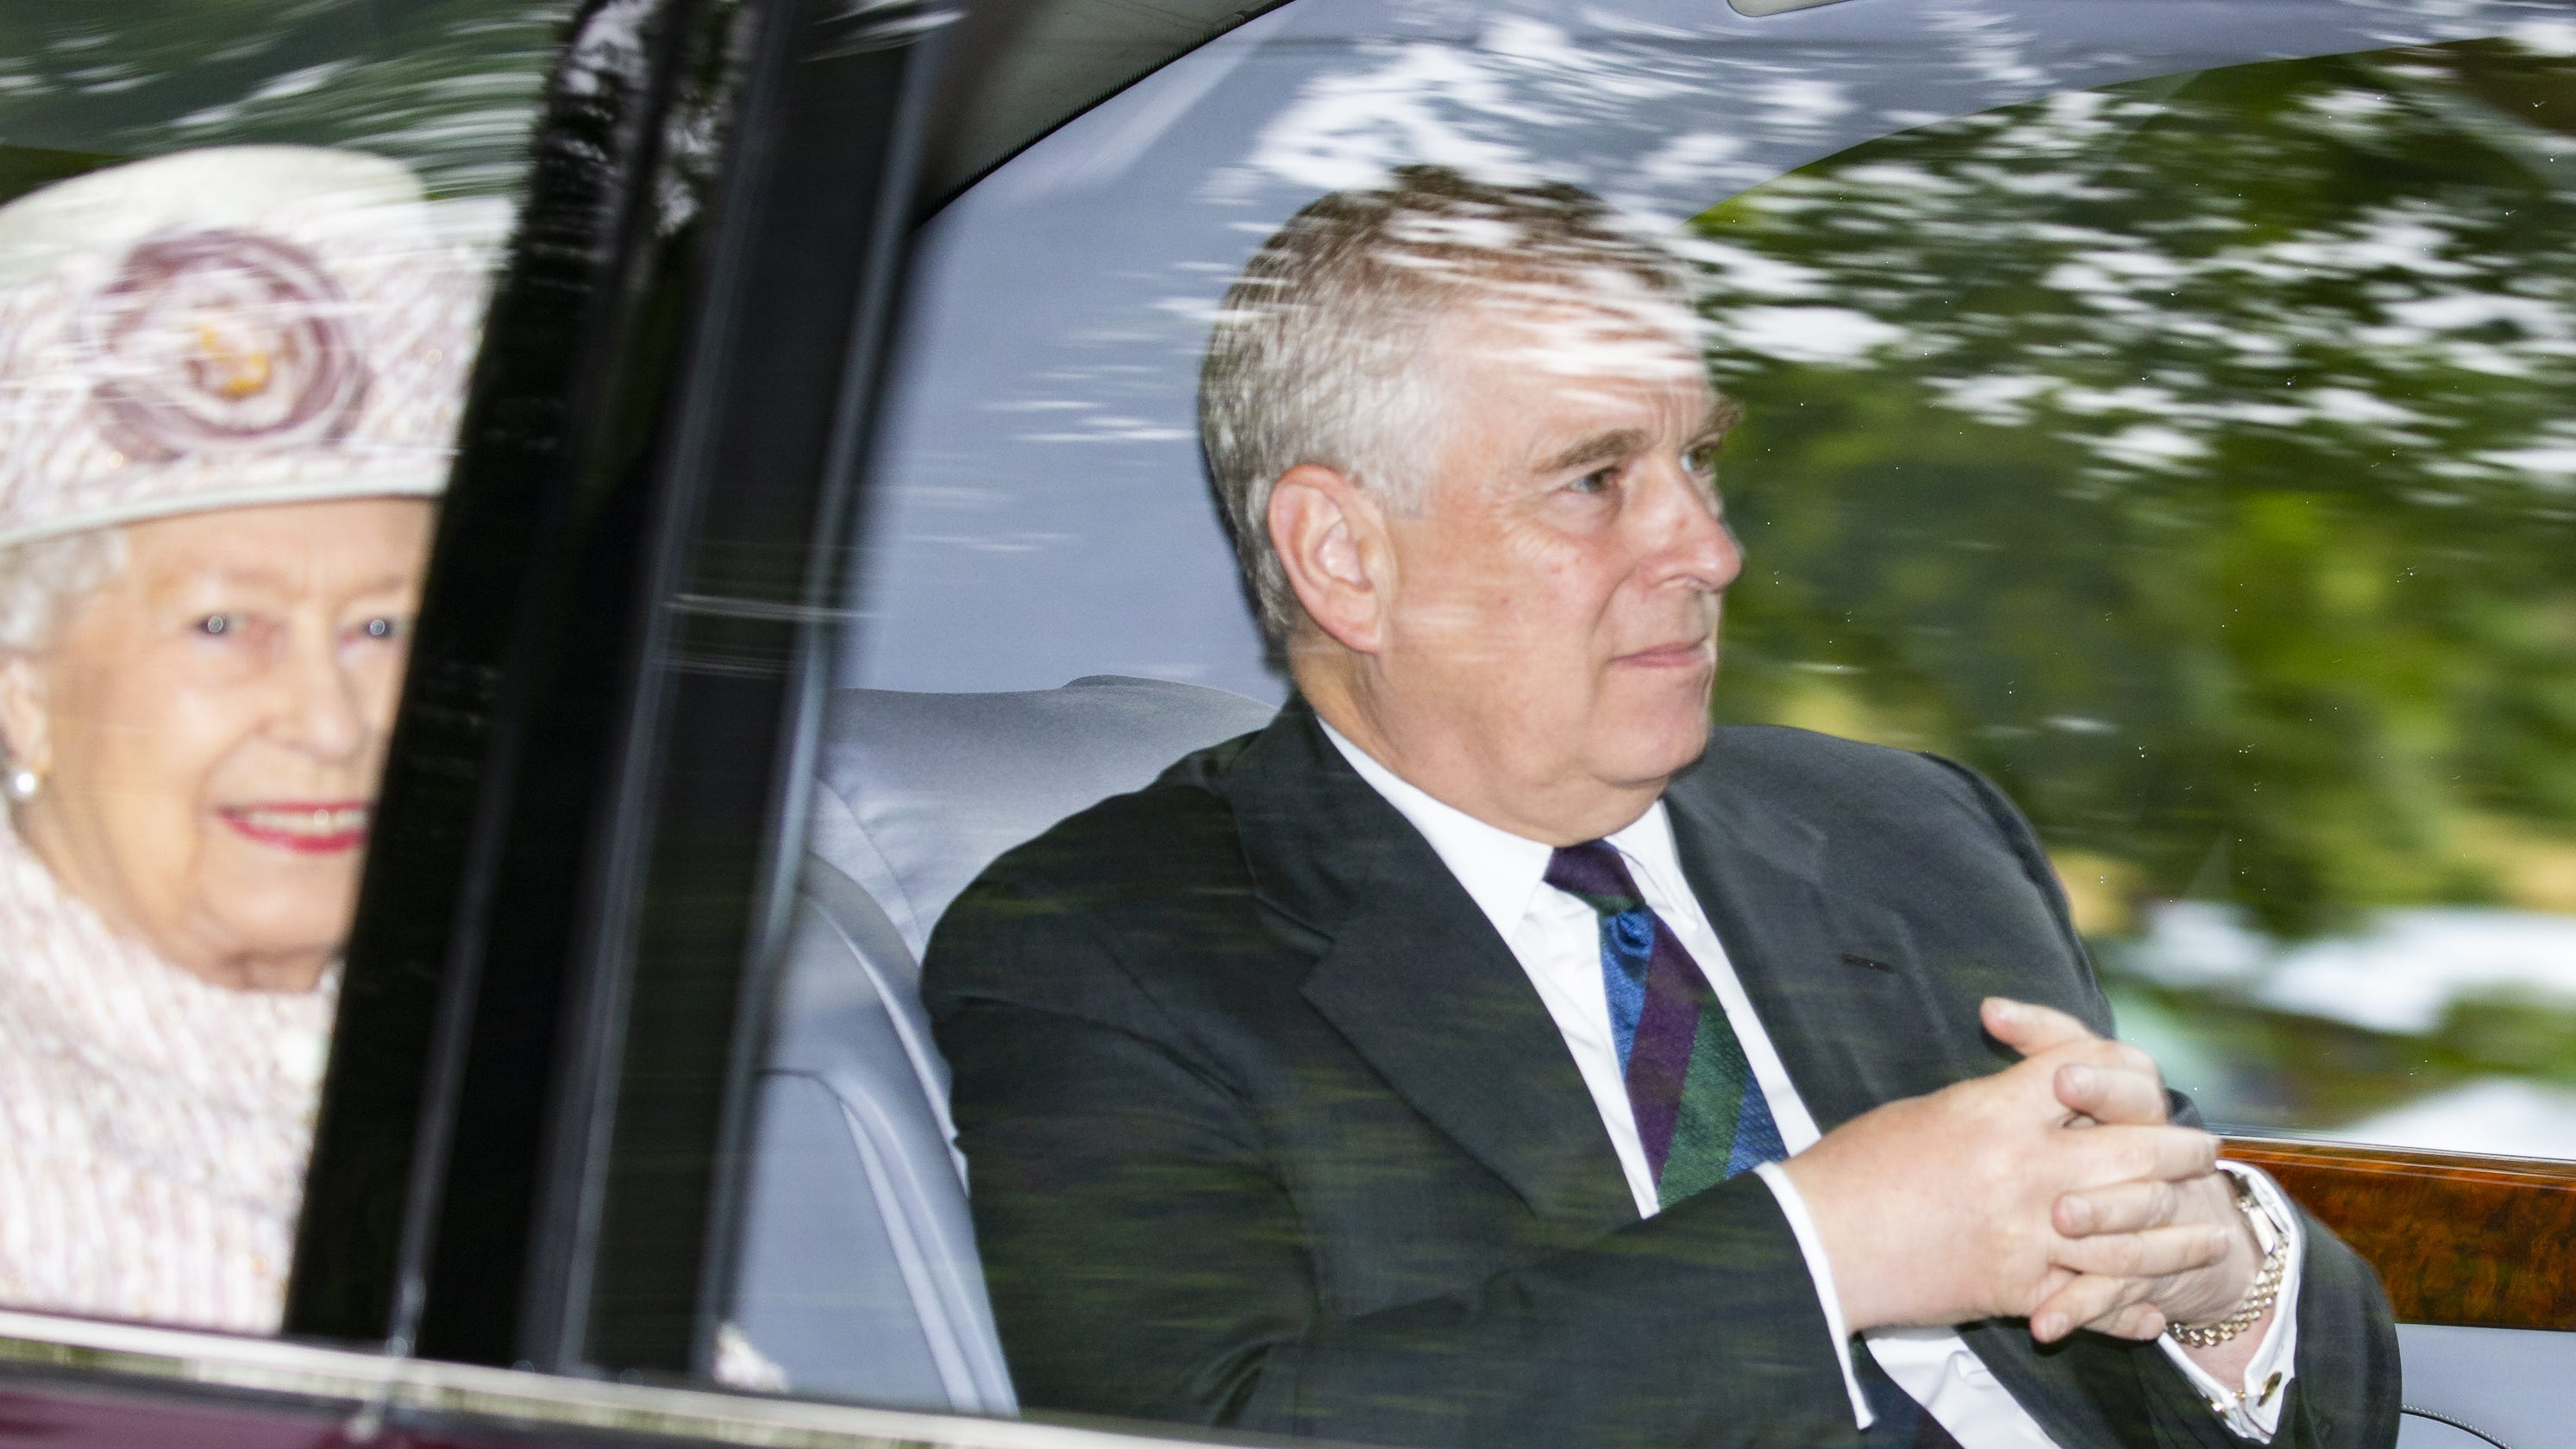 Prince Andrew's link to Jeffrey Epstein explained: What does his death mean for the royal?